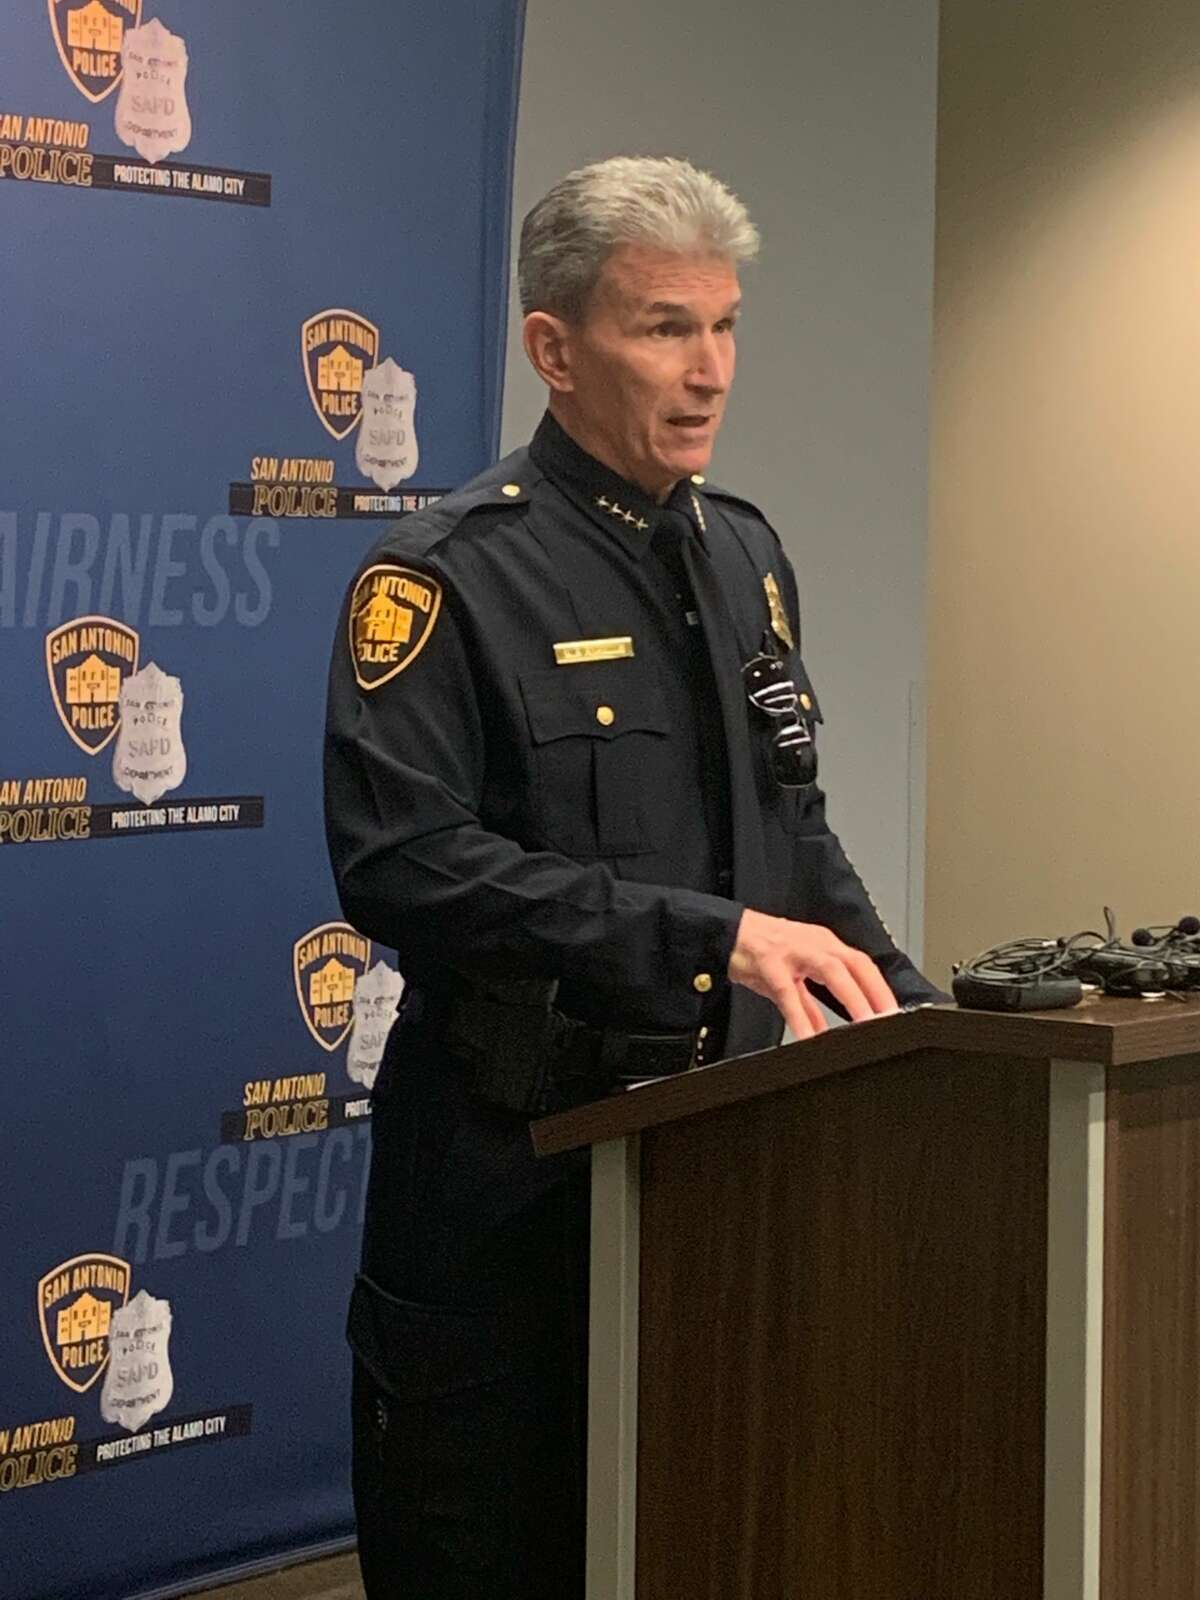 Chief William McManus is seen during a news conference Friday to discuss the injury of one of his officers after a Bexar County Sheriff's Office pursuit.